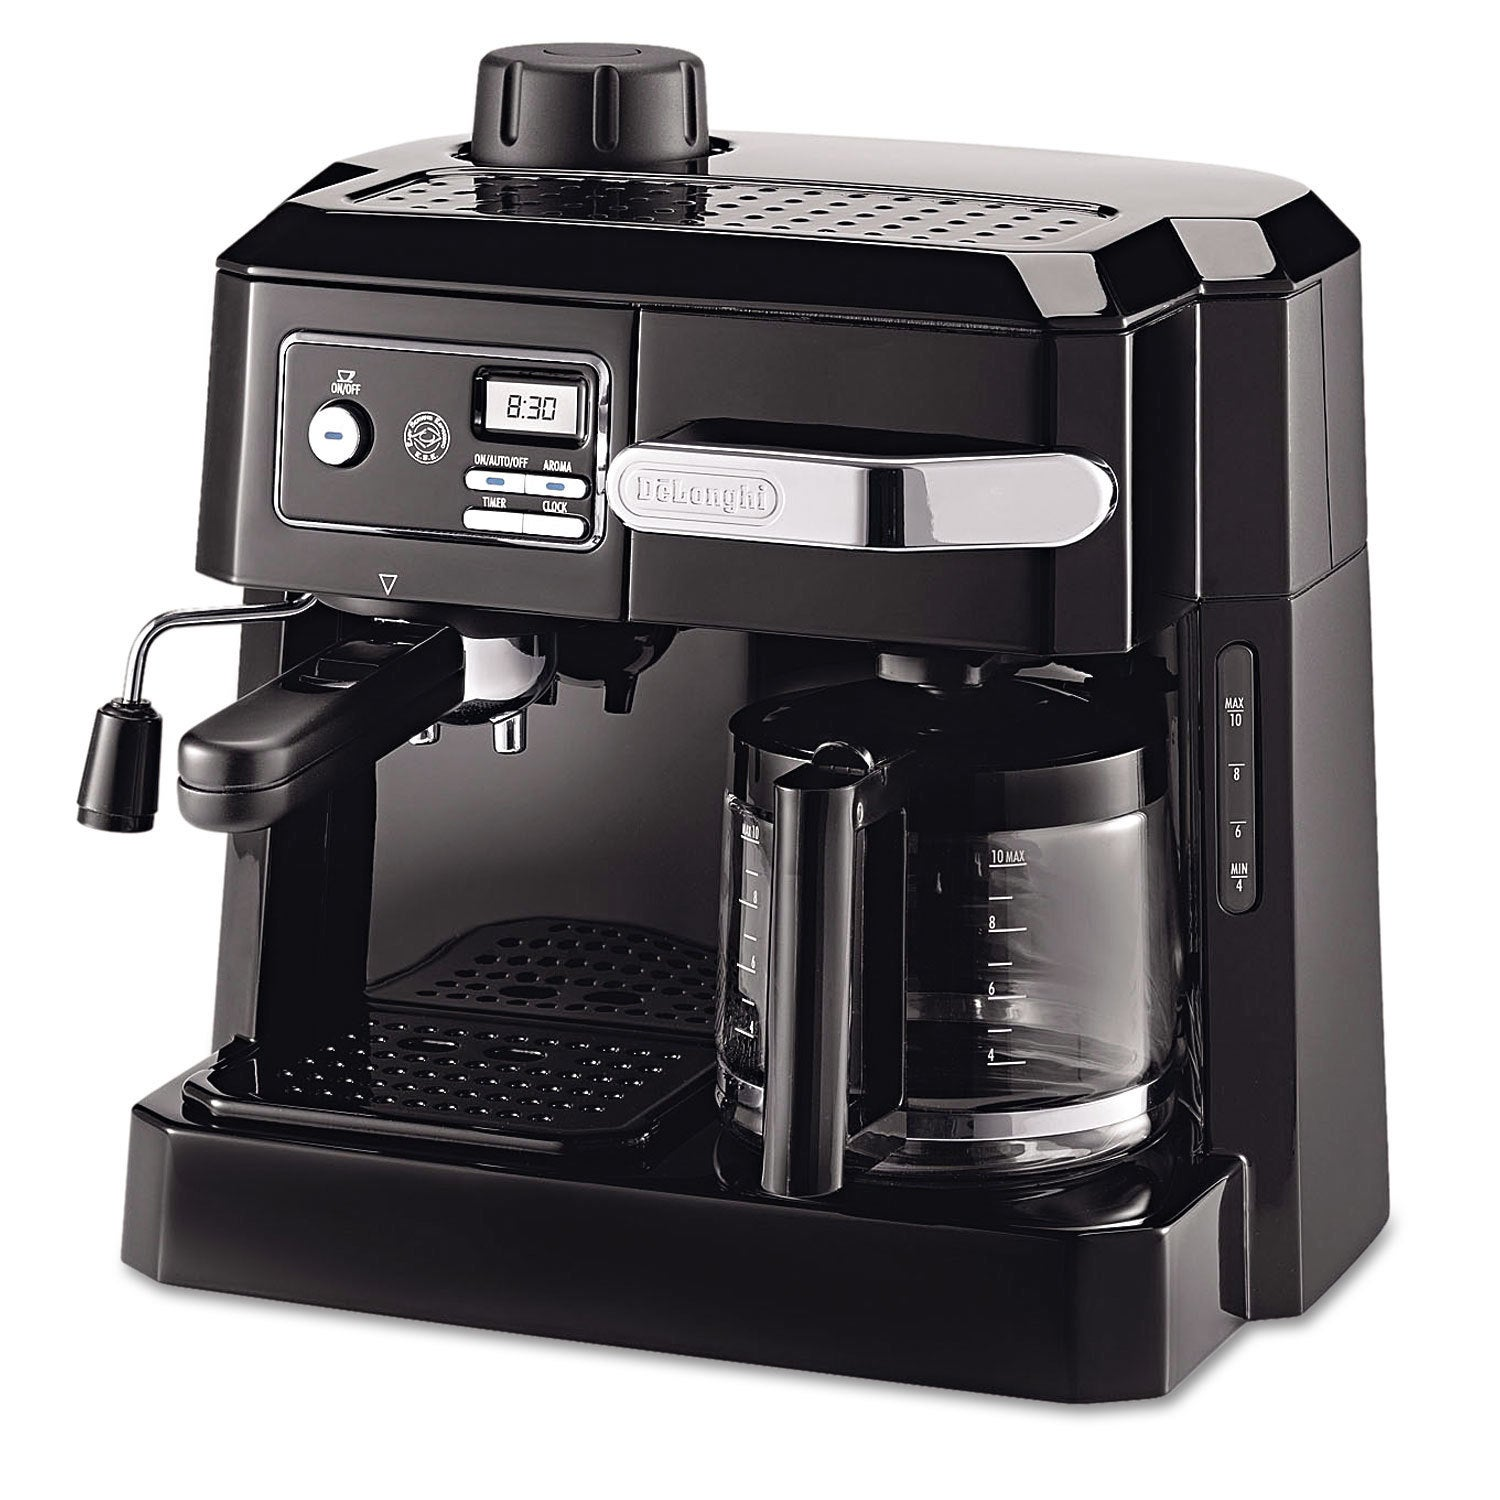 DeLonghi BCO320T Combination Drip Coffee, Cappuccino and Espresso Machine with Programmable Timer - Black As Is Item Black, Silver